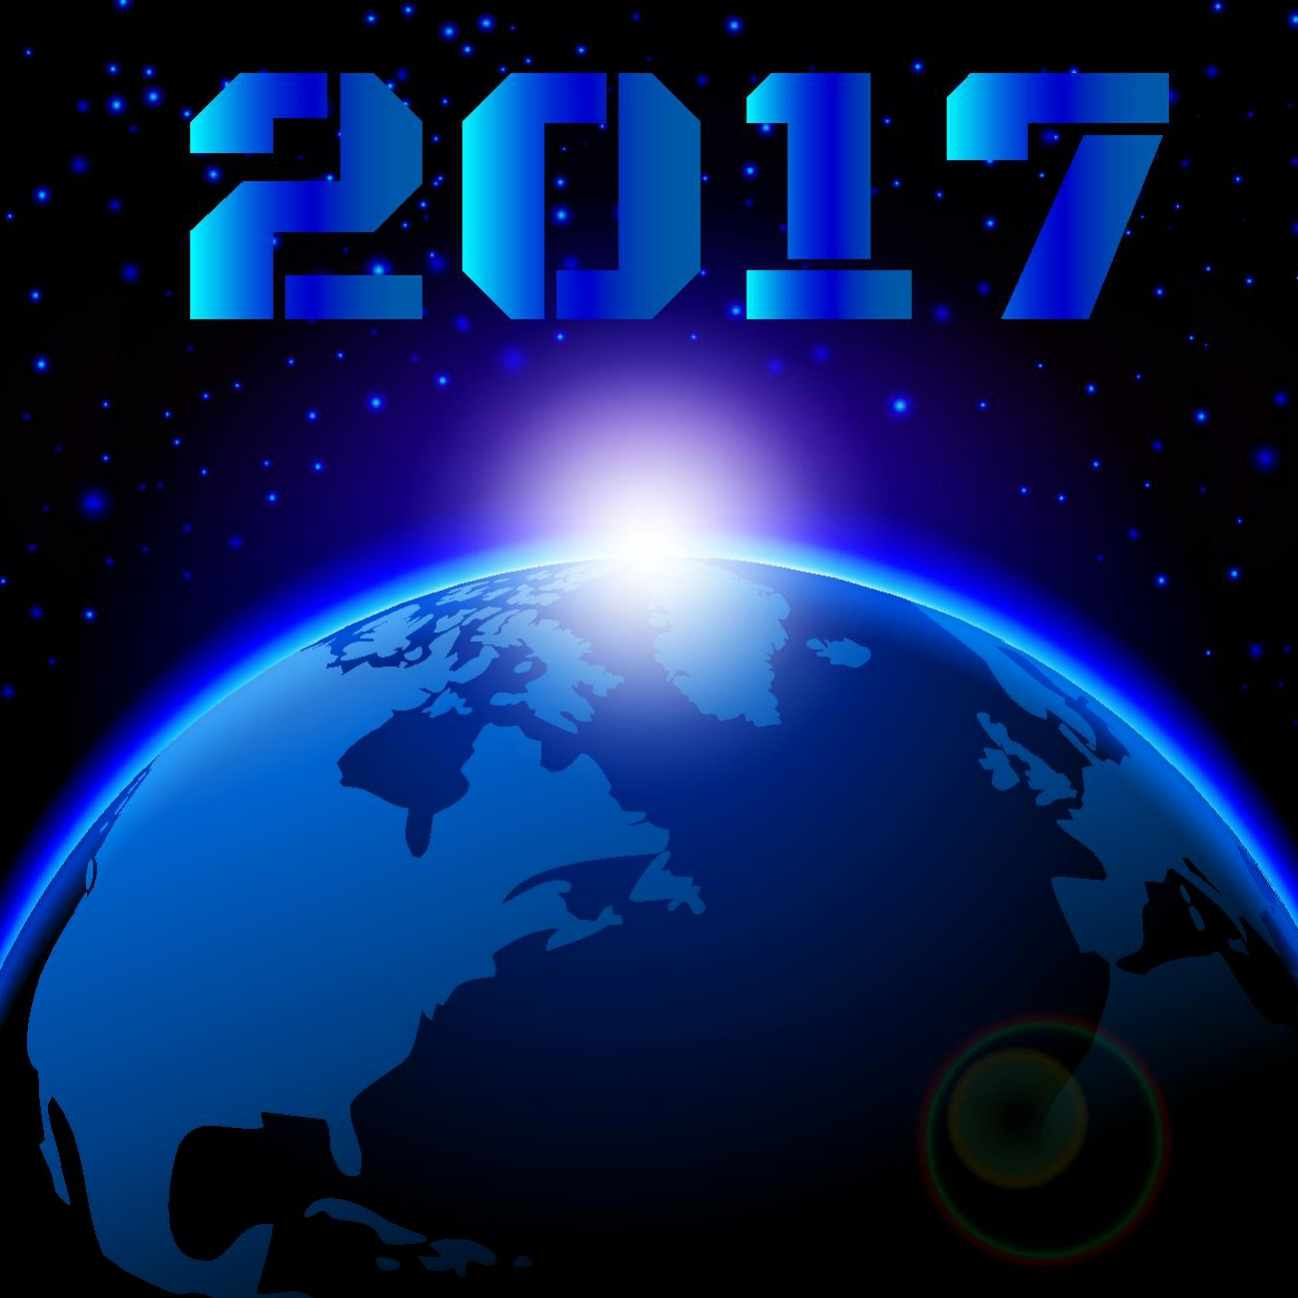 a globe with nightsky background and 2017 written above